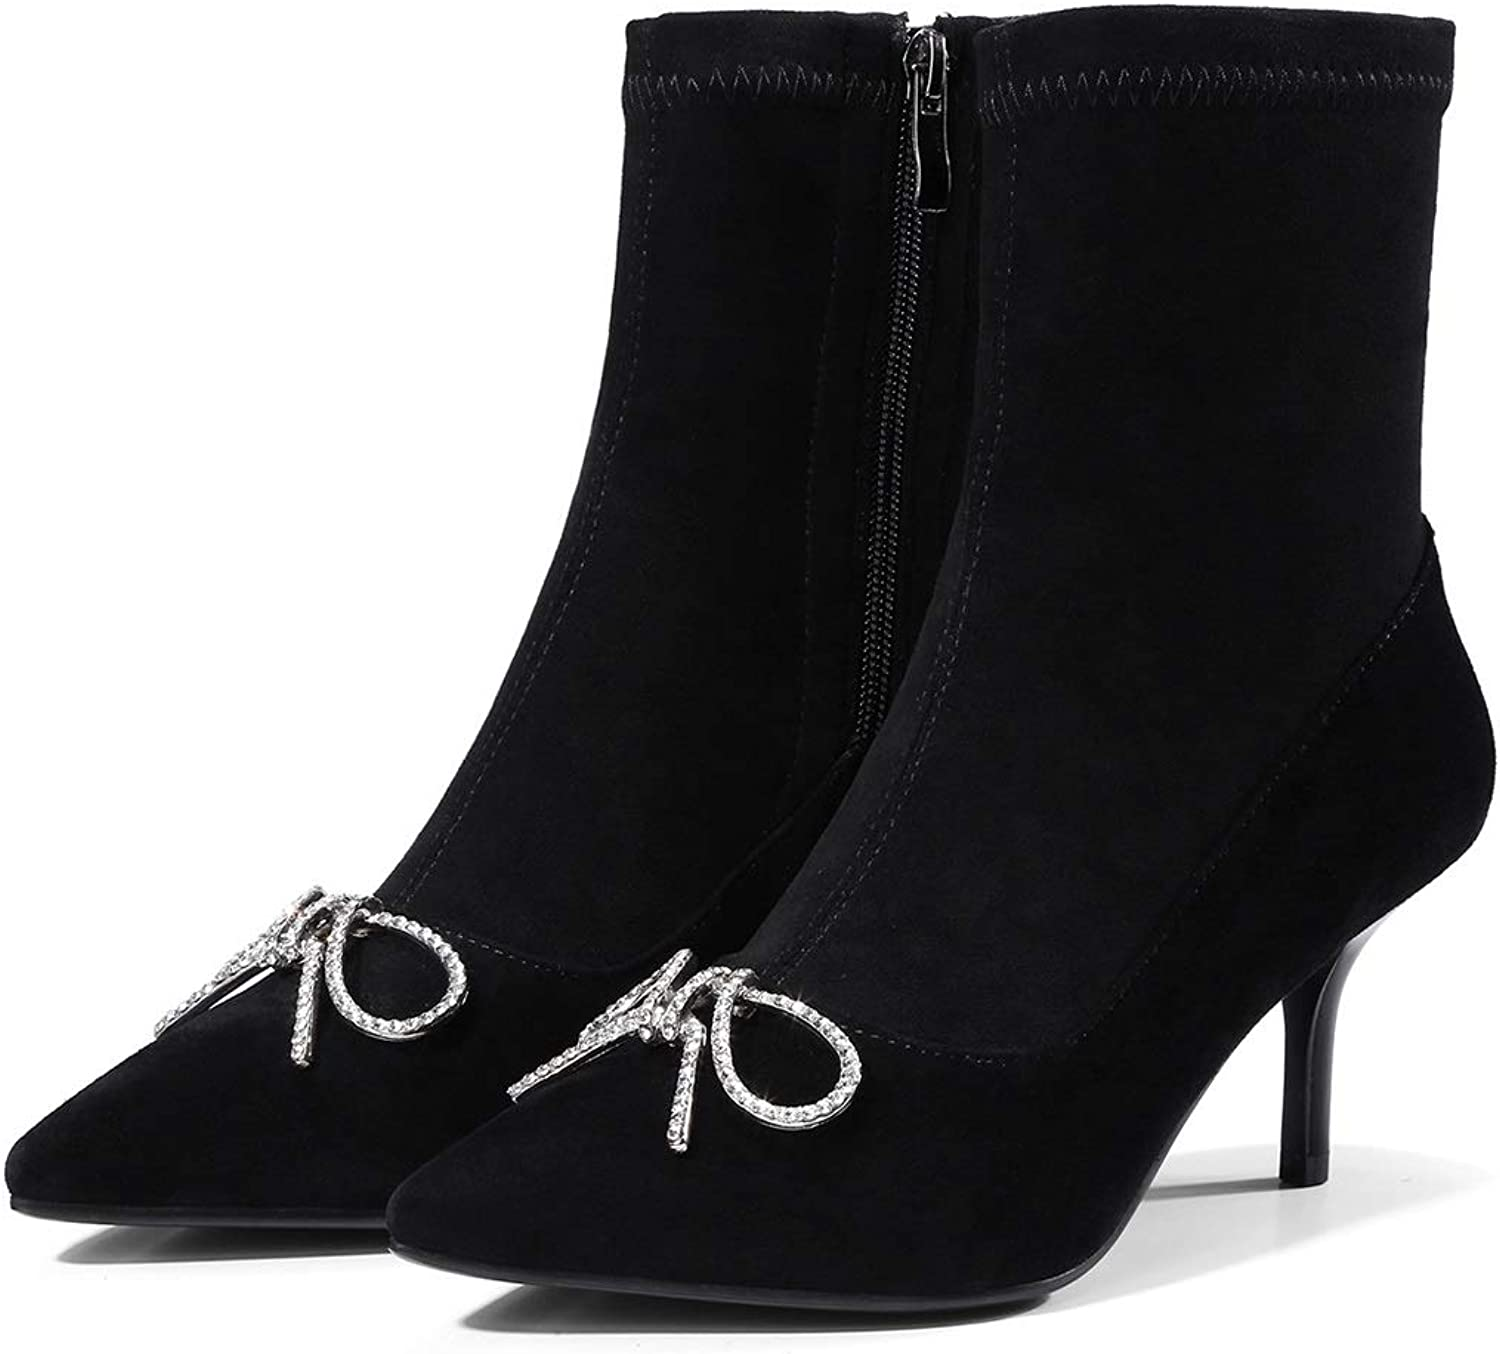 Ladies Booties, Leather Shining Rhinestone Butterfly Knot Pointed Fashion Boots Women's Stiletto Heel Low Tube Ankle Boots Martin Boots (color   Black, Size   34)